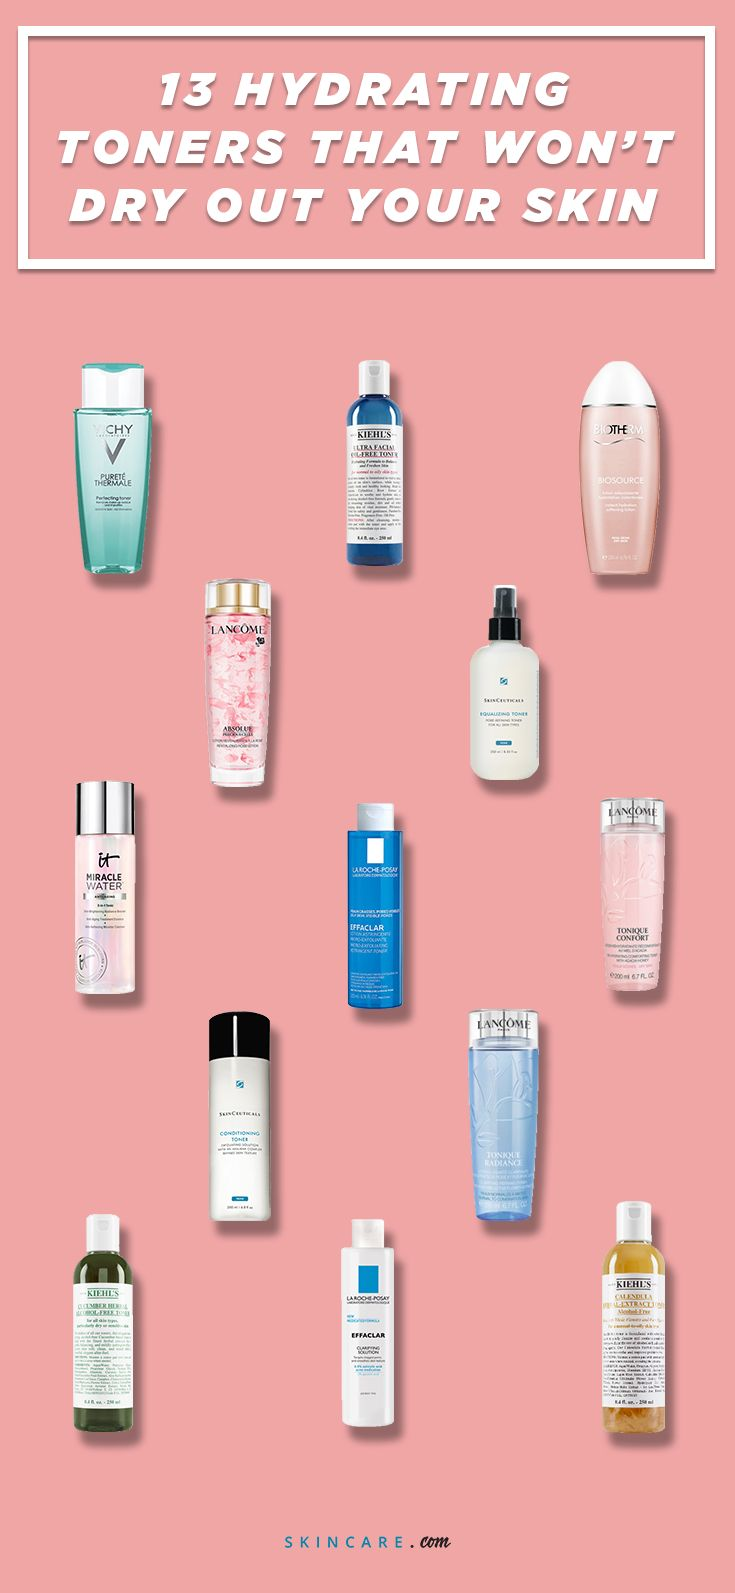 12 Hydrating Toners That Won't Dry Out Your Skin